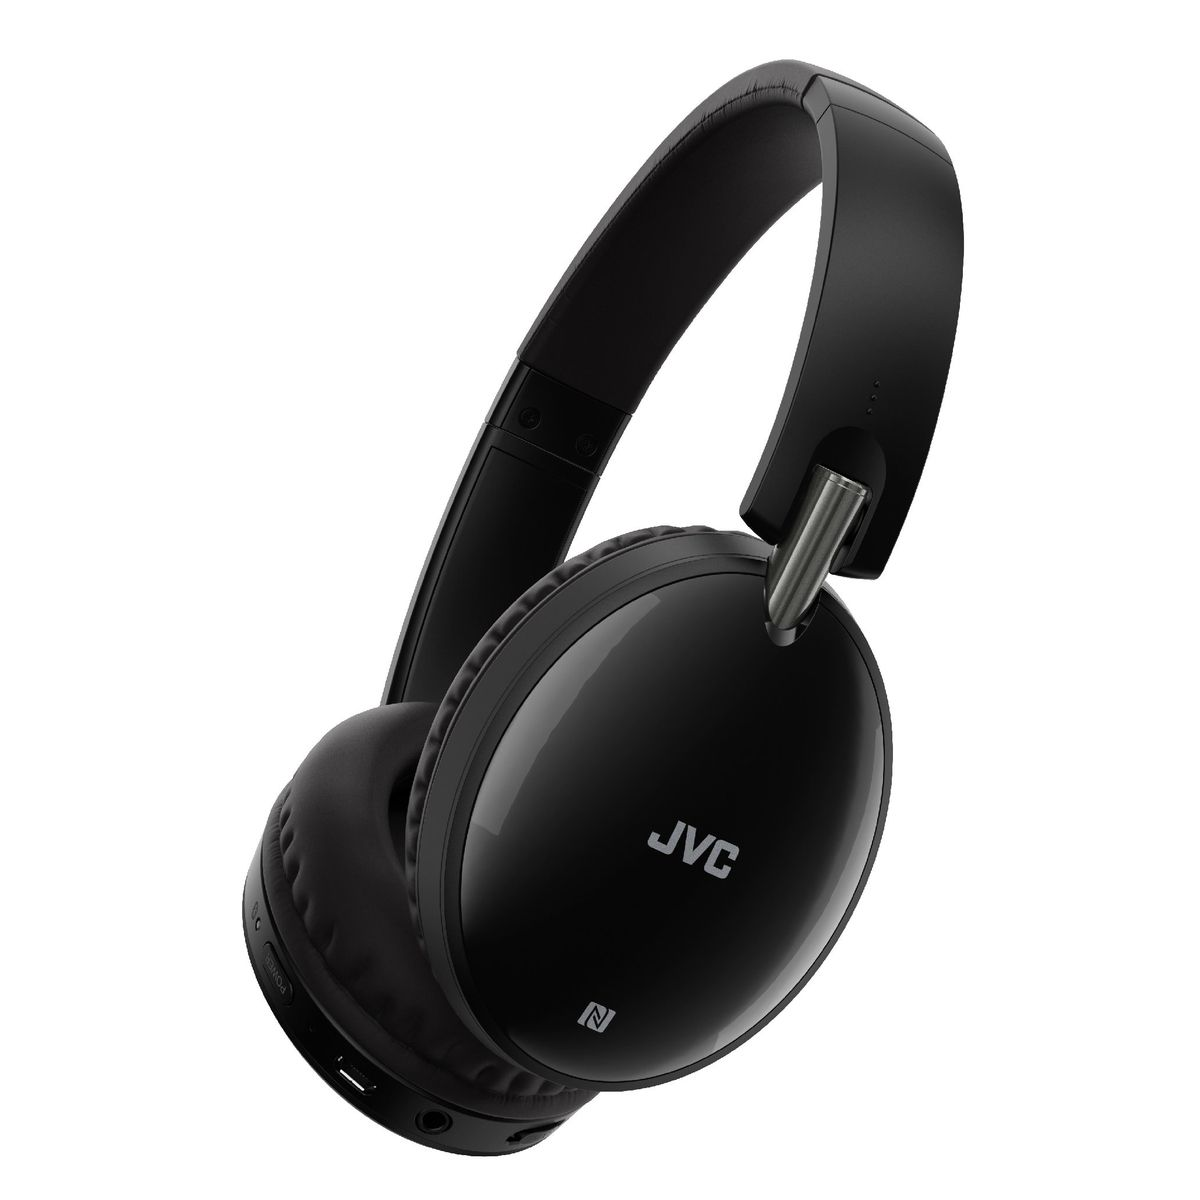 Casque audio circumaural sans fil - HA-S70BT-B - Noir